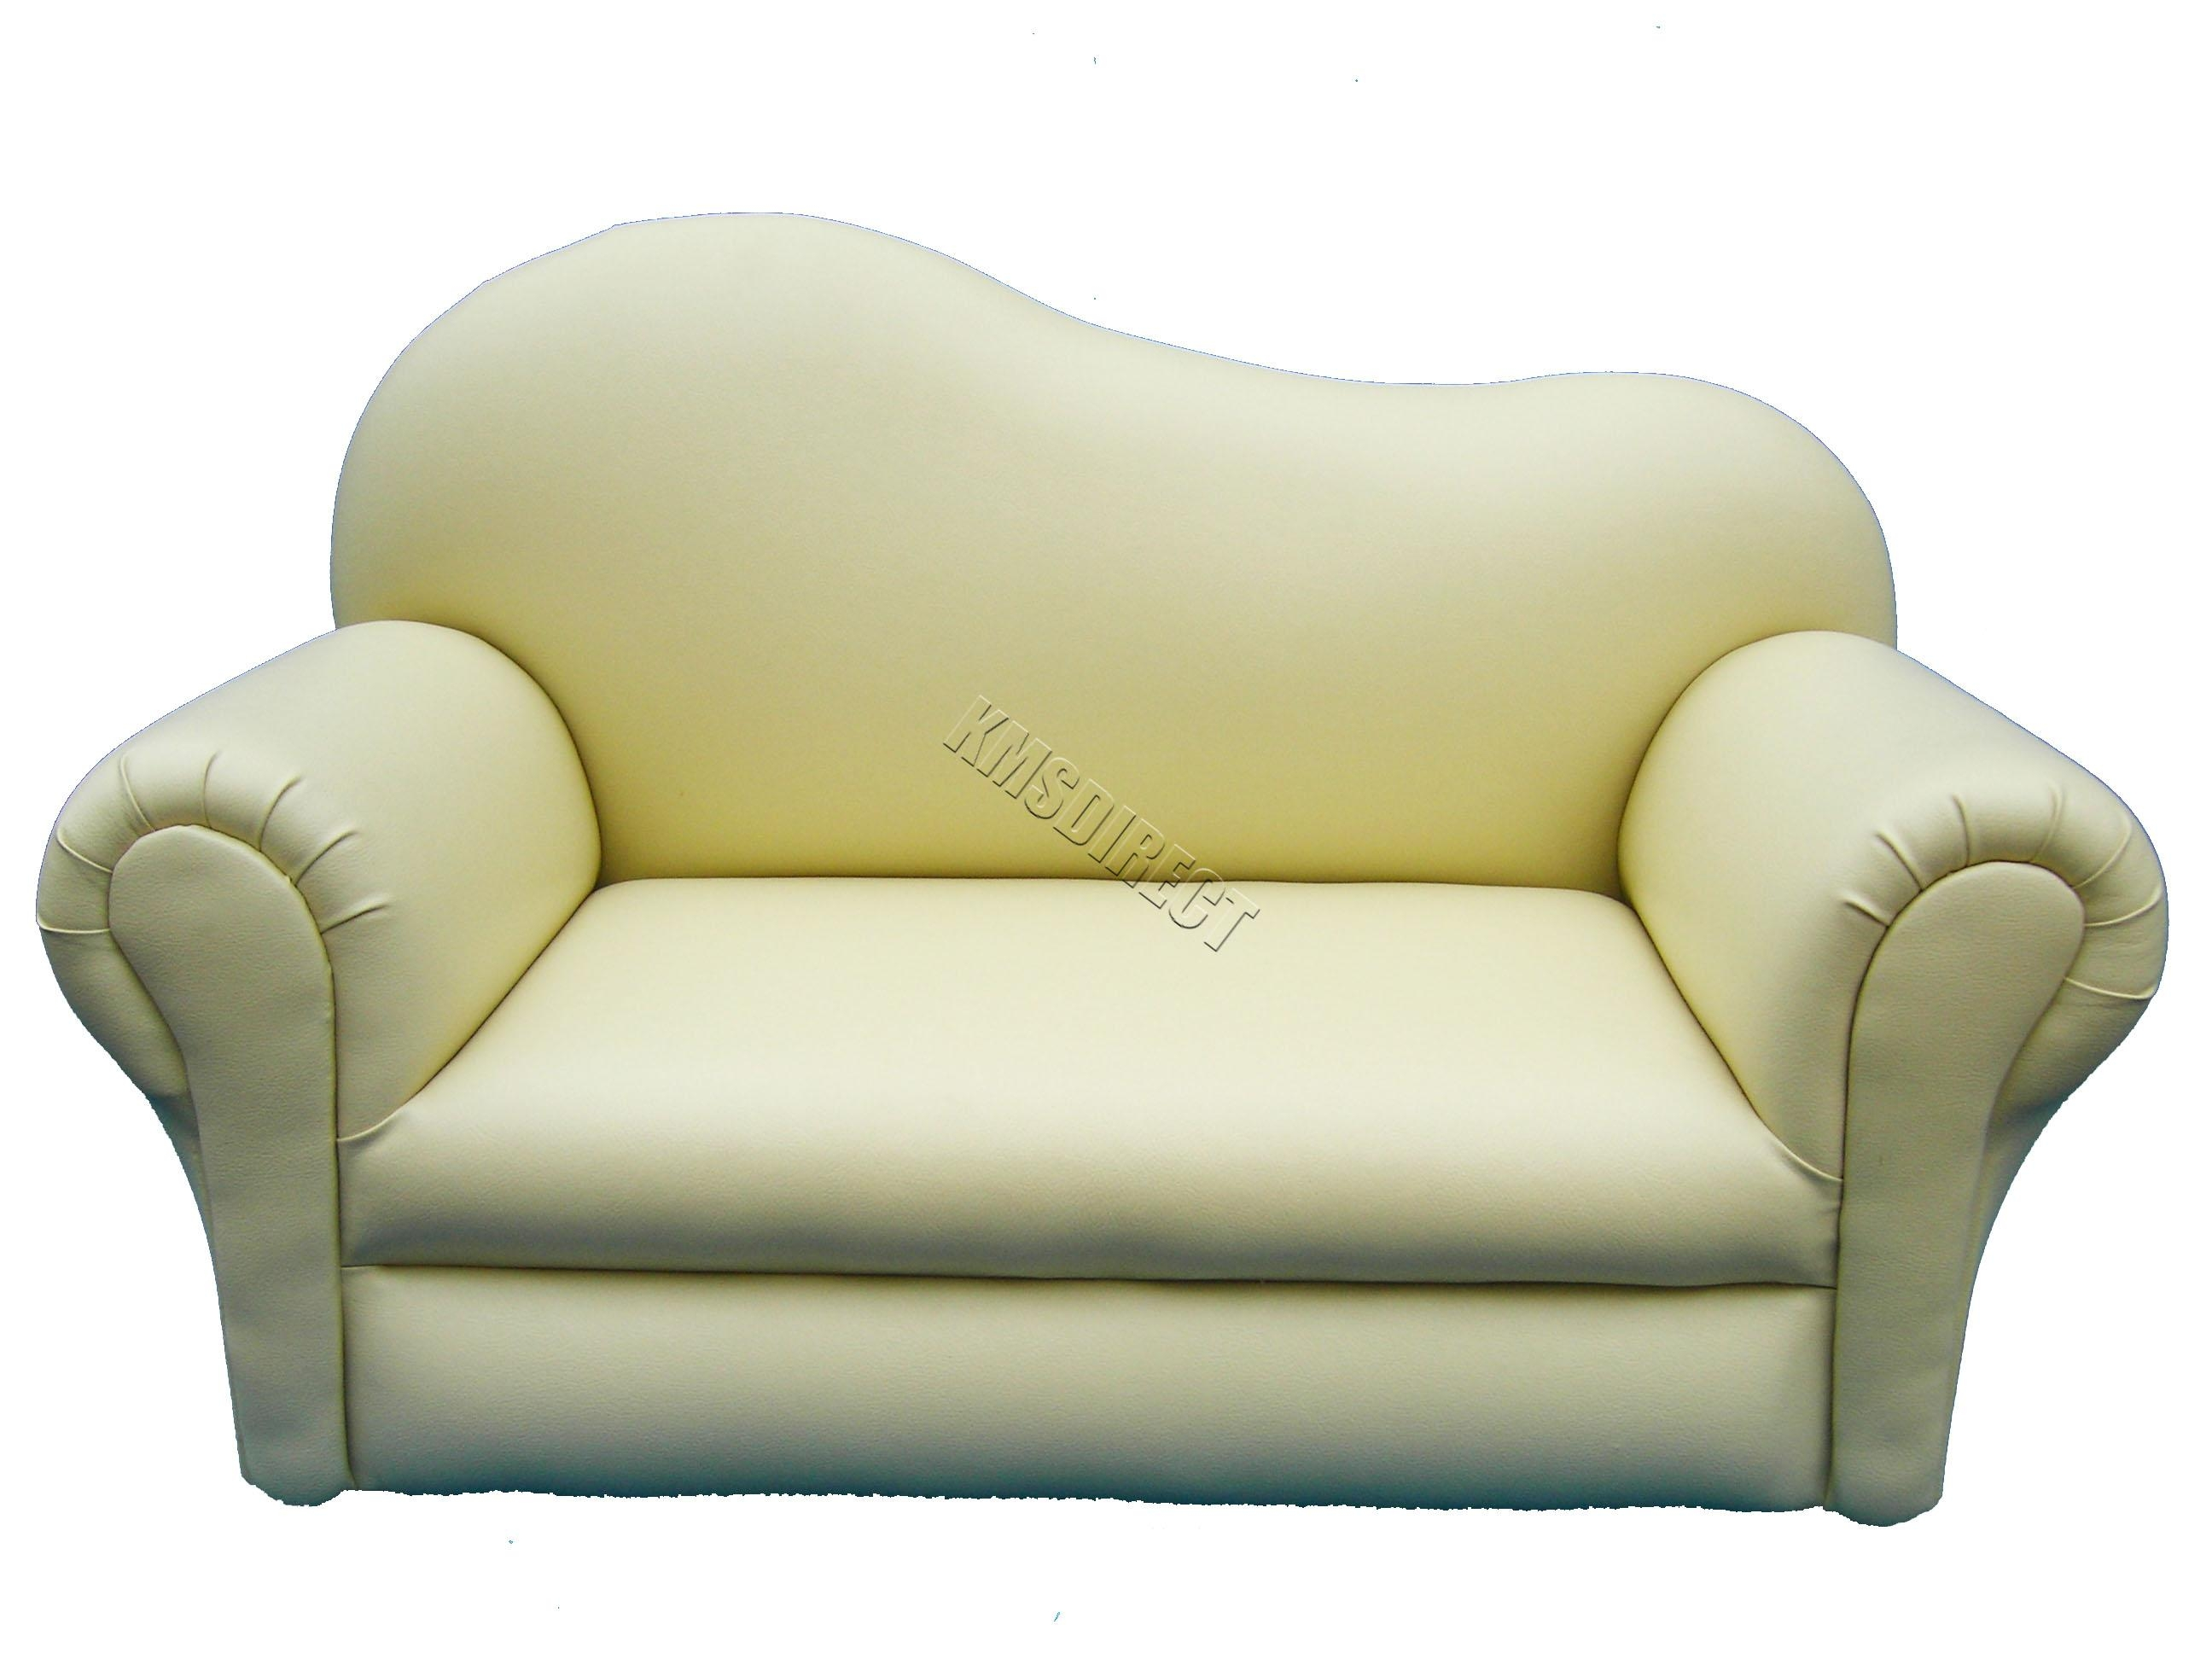 Sofas Center : 45Fa45F75B5C 1 Sofa Chair For Toddler Hello Kitty Pertaining To Toddler Sofa Chairs (Image 15 of 20)